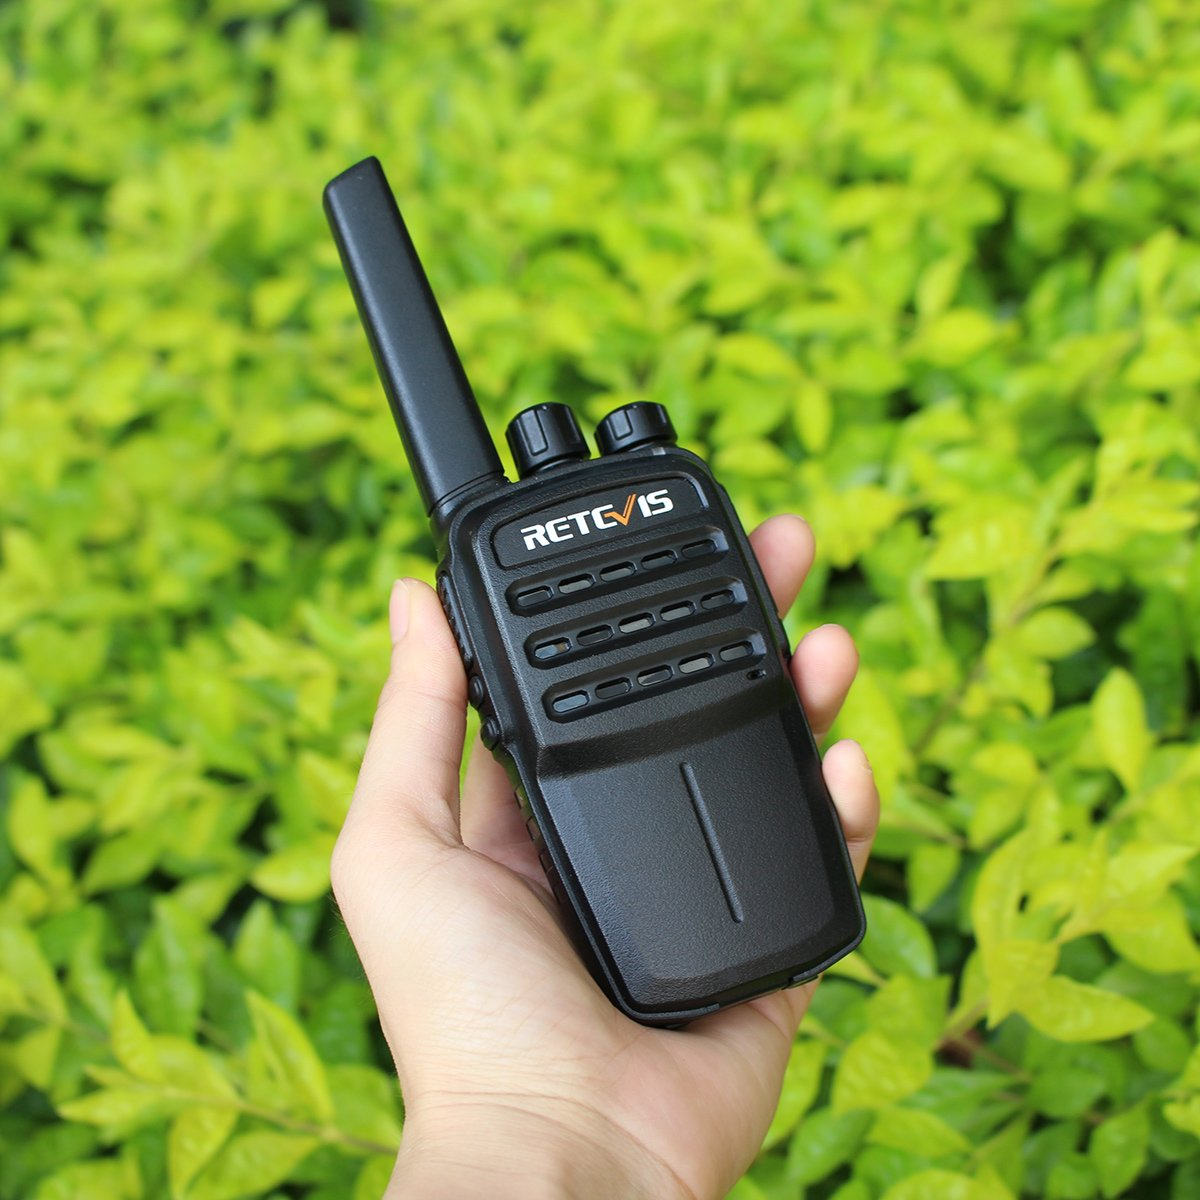 Retevis RT40 Walkie Talkies 48 Channel Two-Way Radio Digital Analog Group Call 1700mAh Li-on Rechargeable Battery with USB Charger FA9128AX2-J0013A 1 Pair